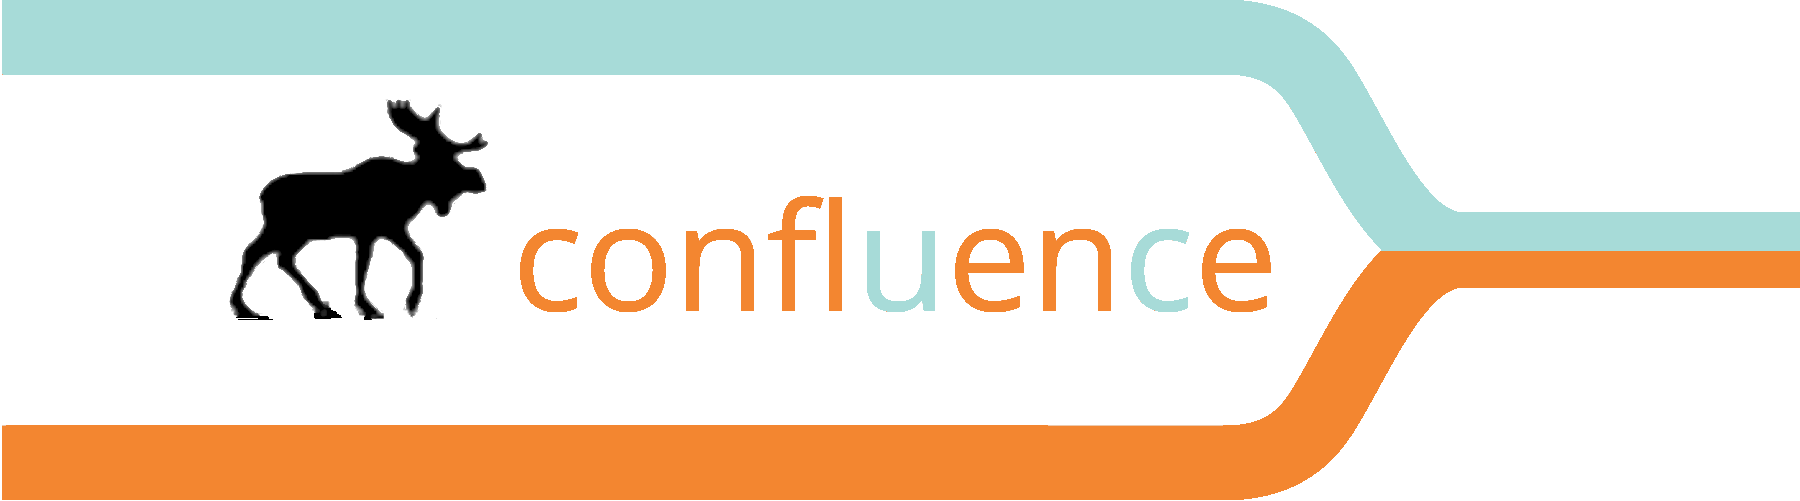 confluence banner alternative